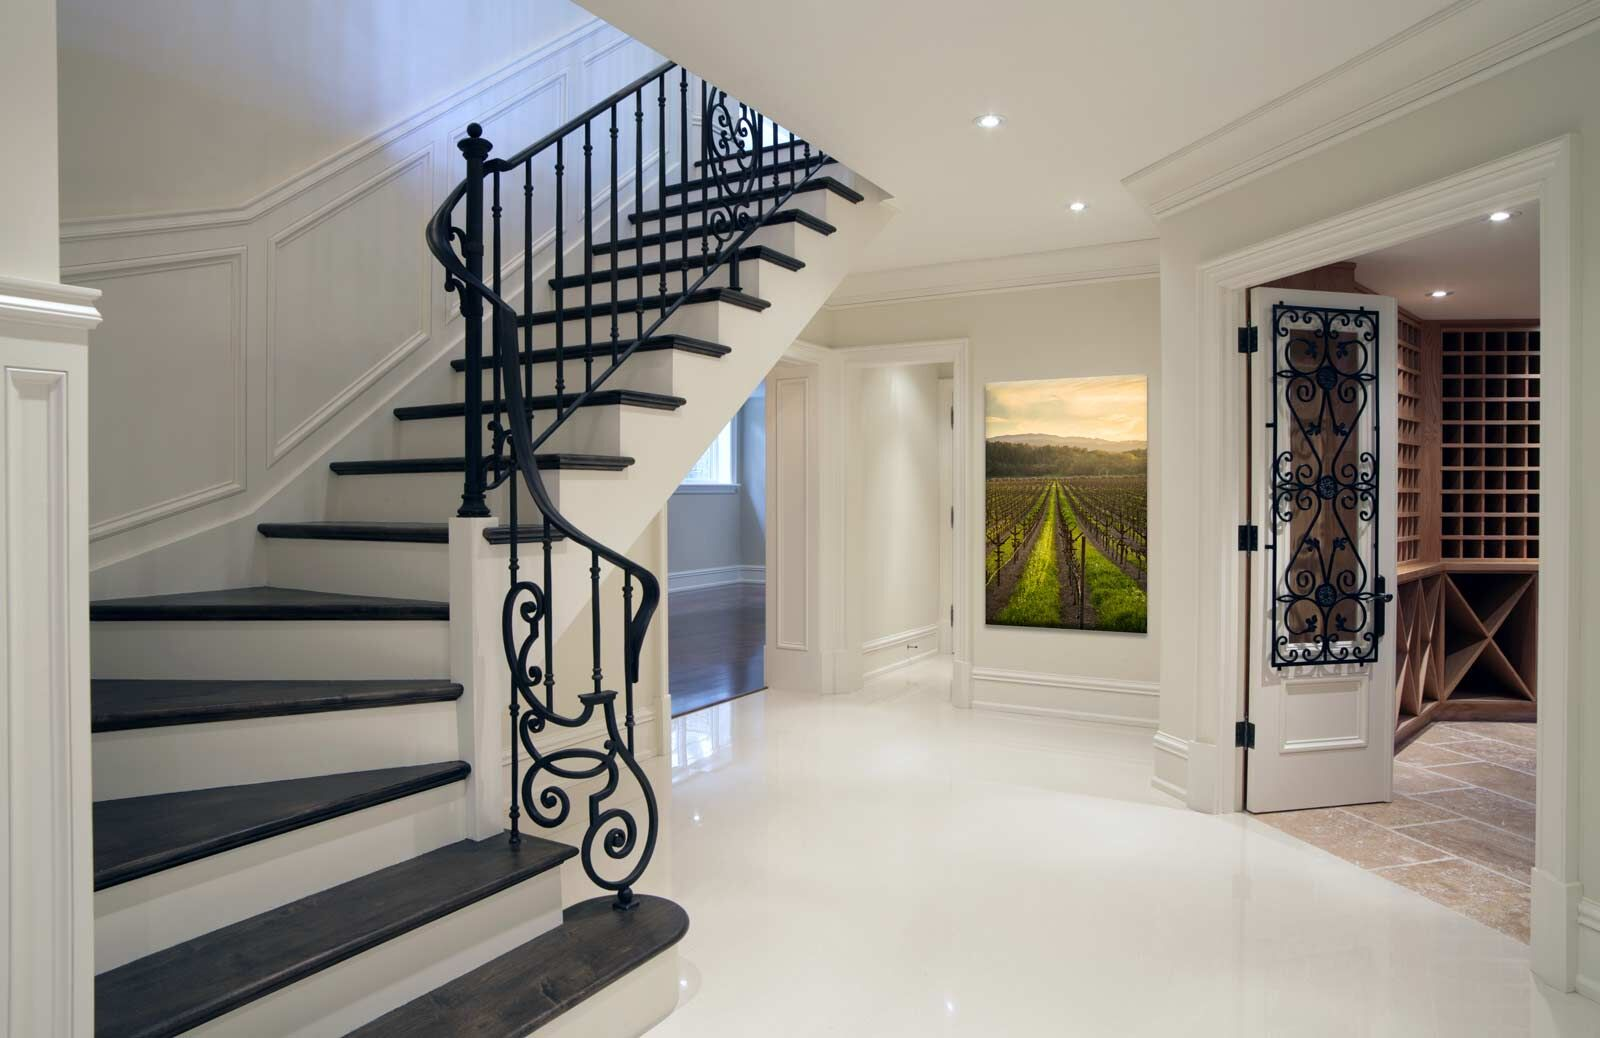 Home Interior Design Staircase and Hallway